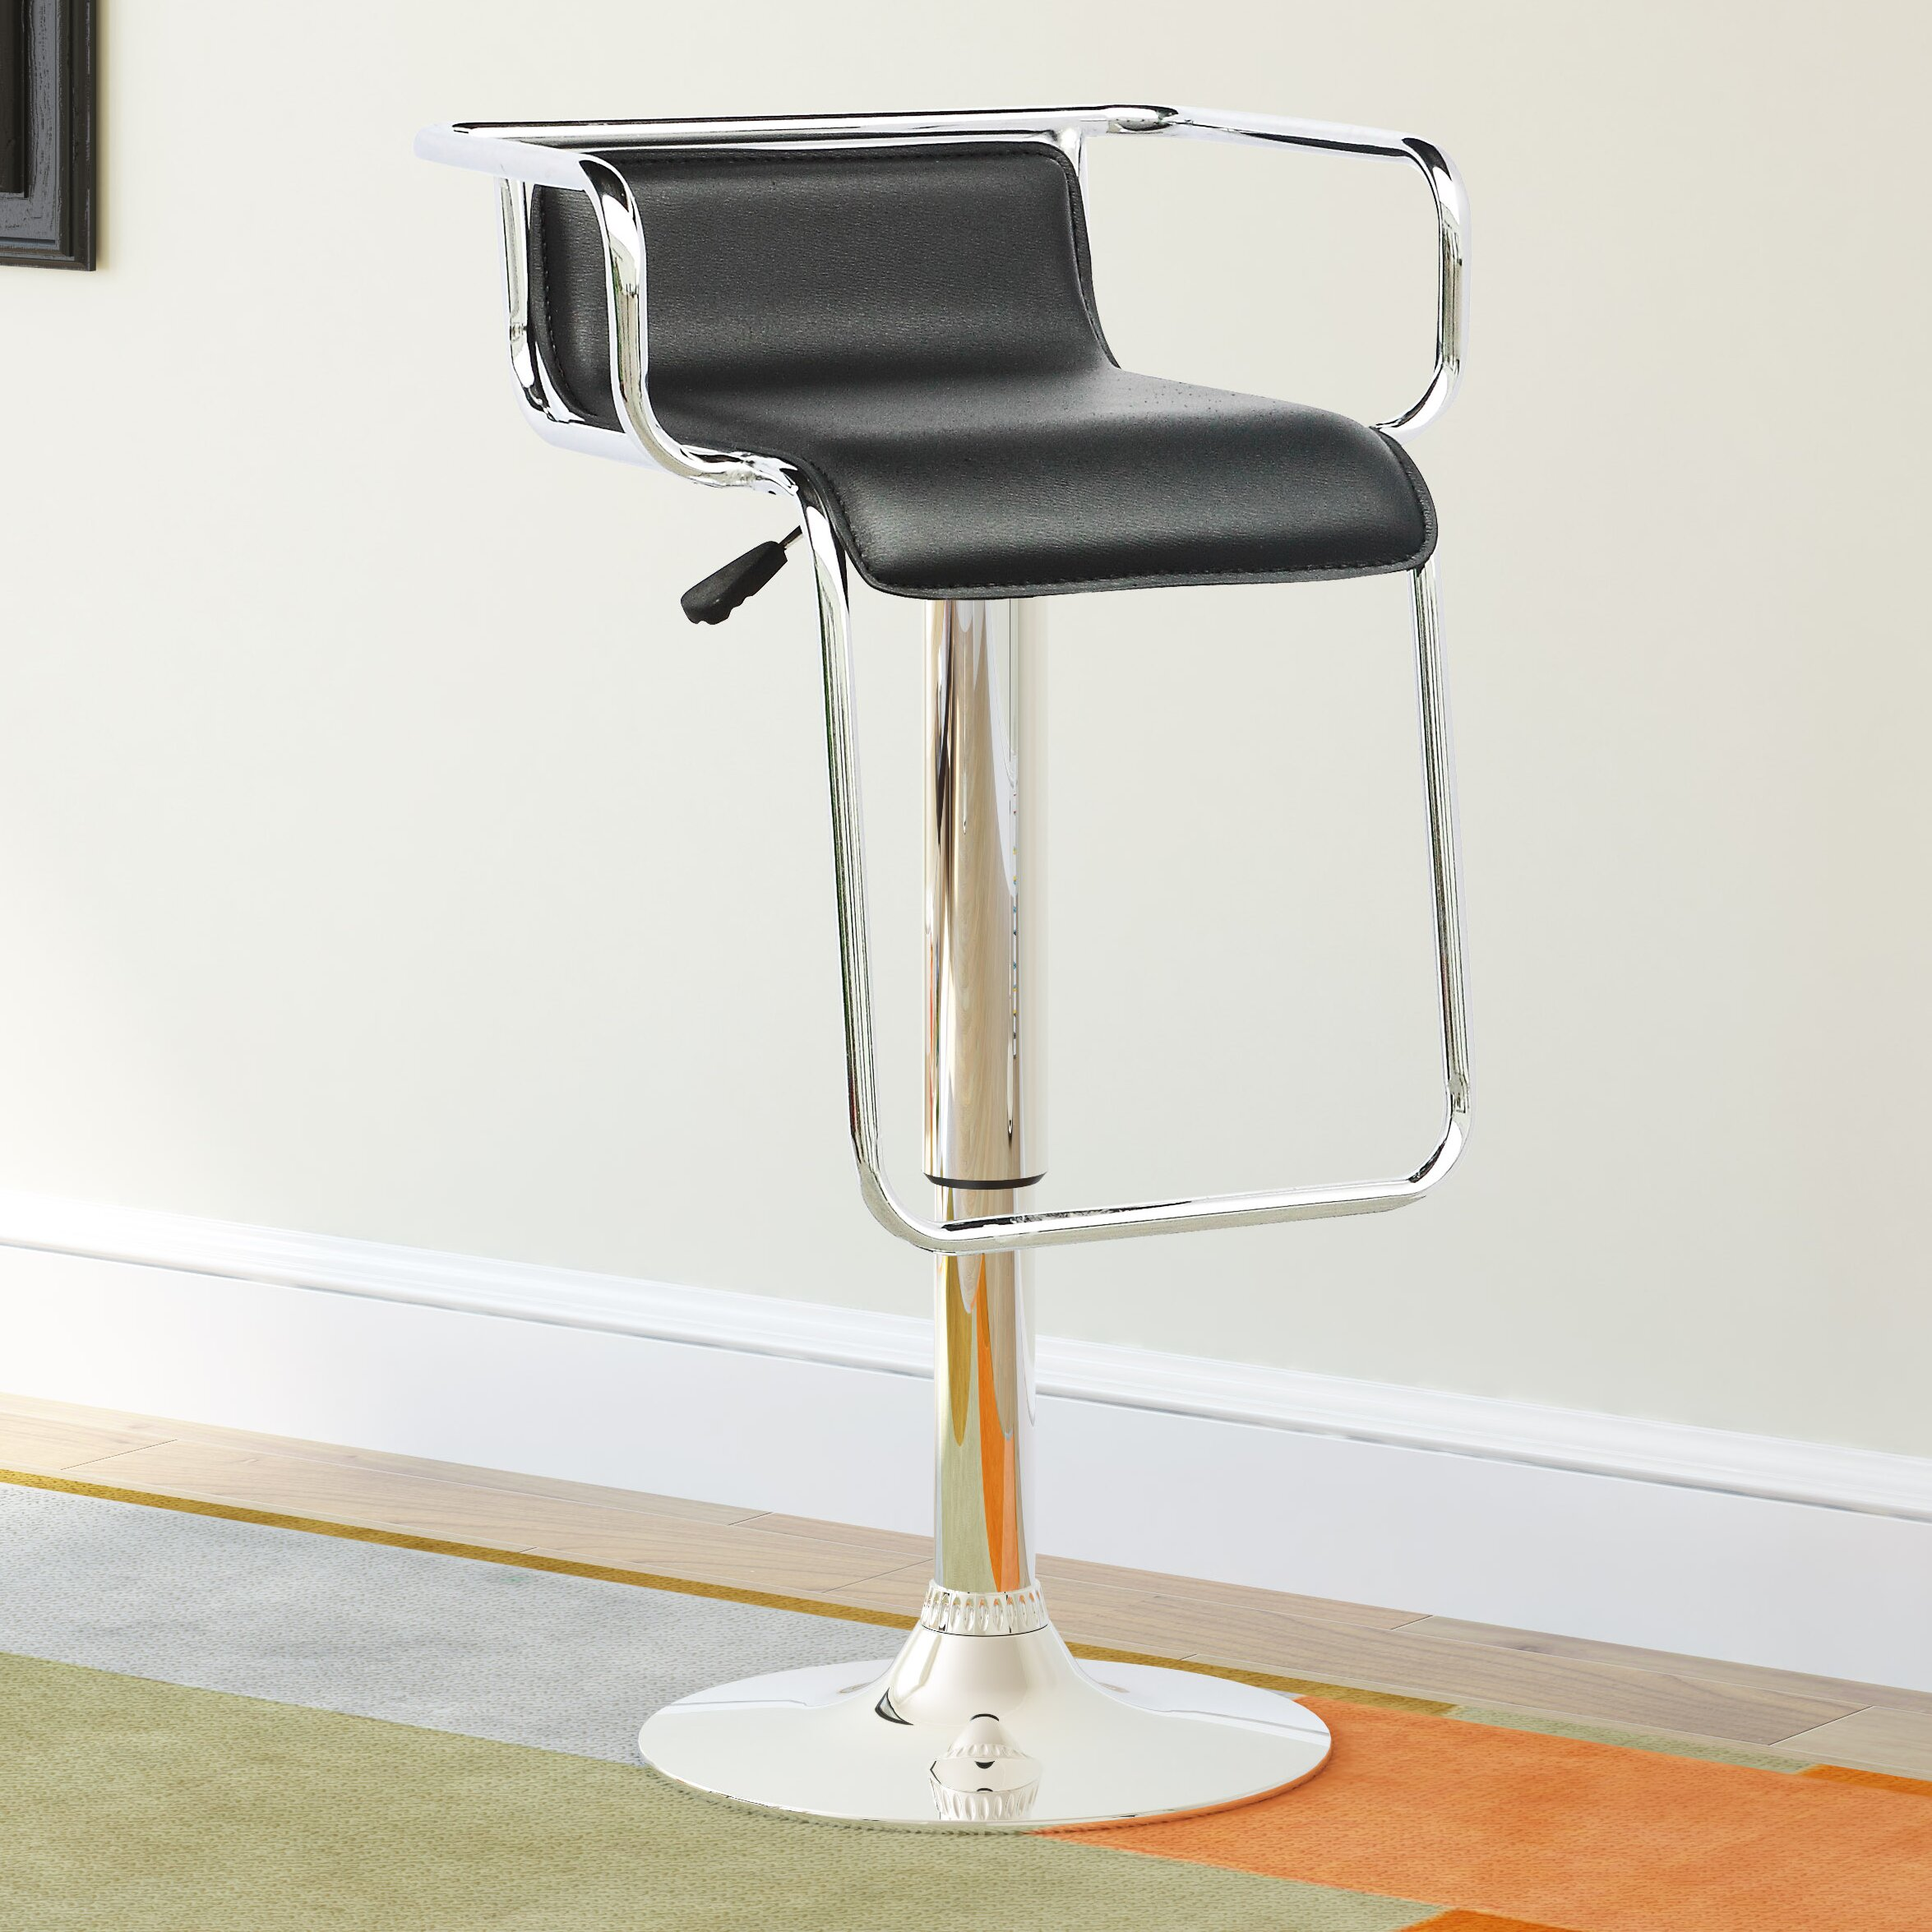 CorLiving Adjustable Height Swivel Bar Stool amp Reviews  : CorLiving Adjustable Height Swivel Bar Stool from www.wayfair.com size 2350 x 2350 jpeg 721kB